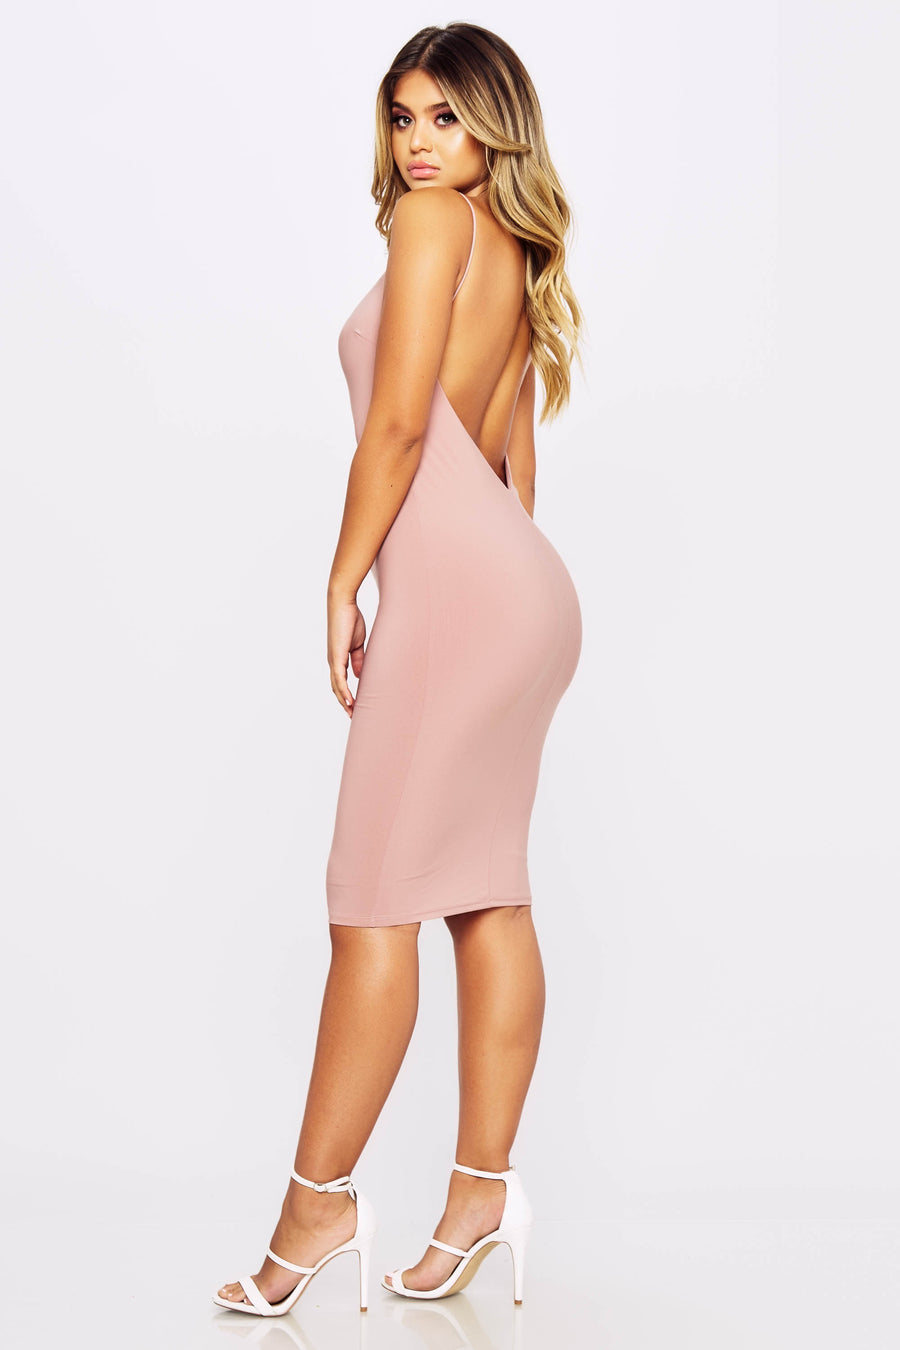 Touch Me Dress - HoneyBum